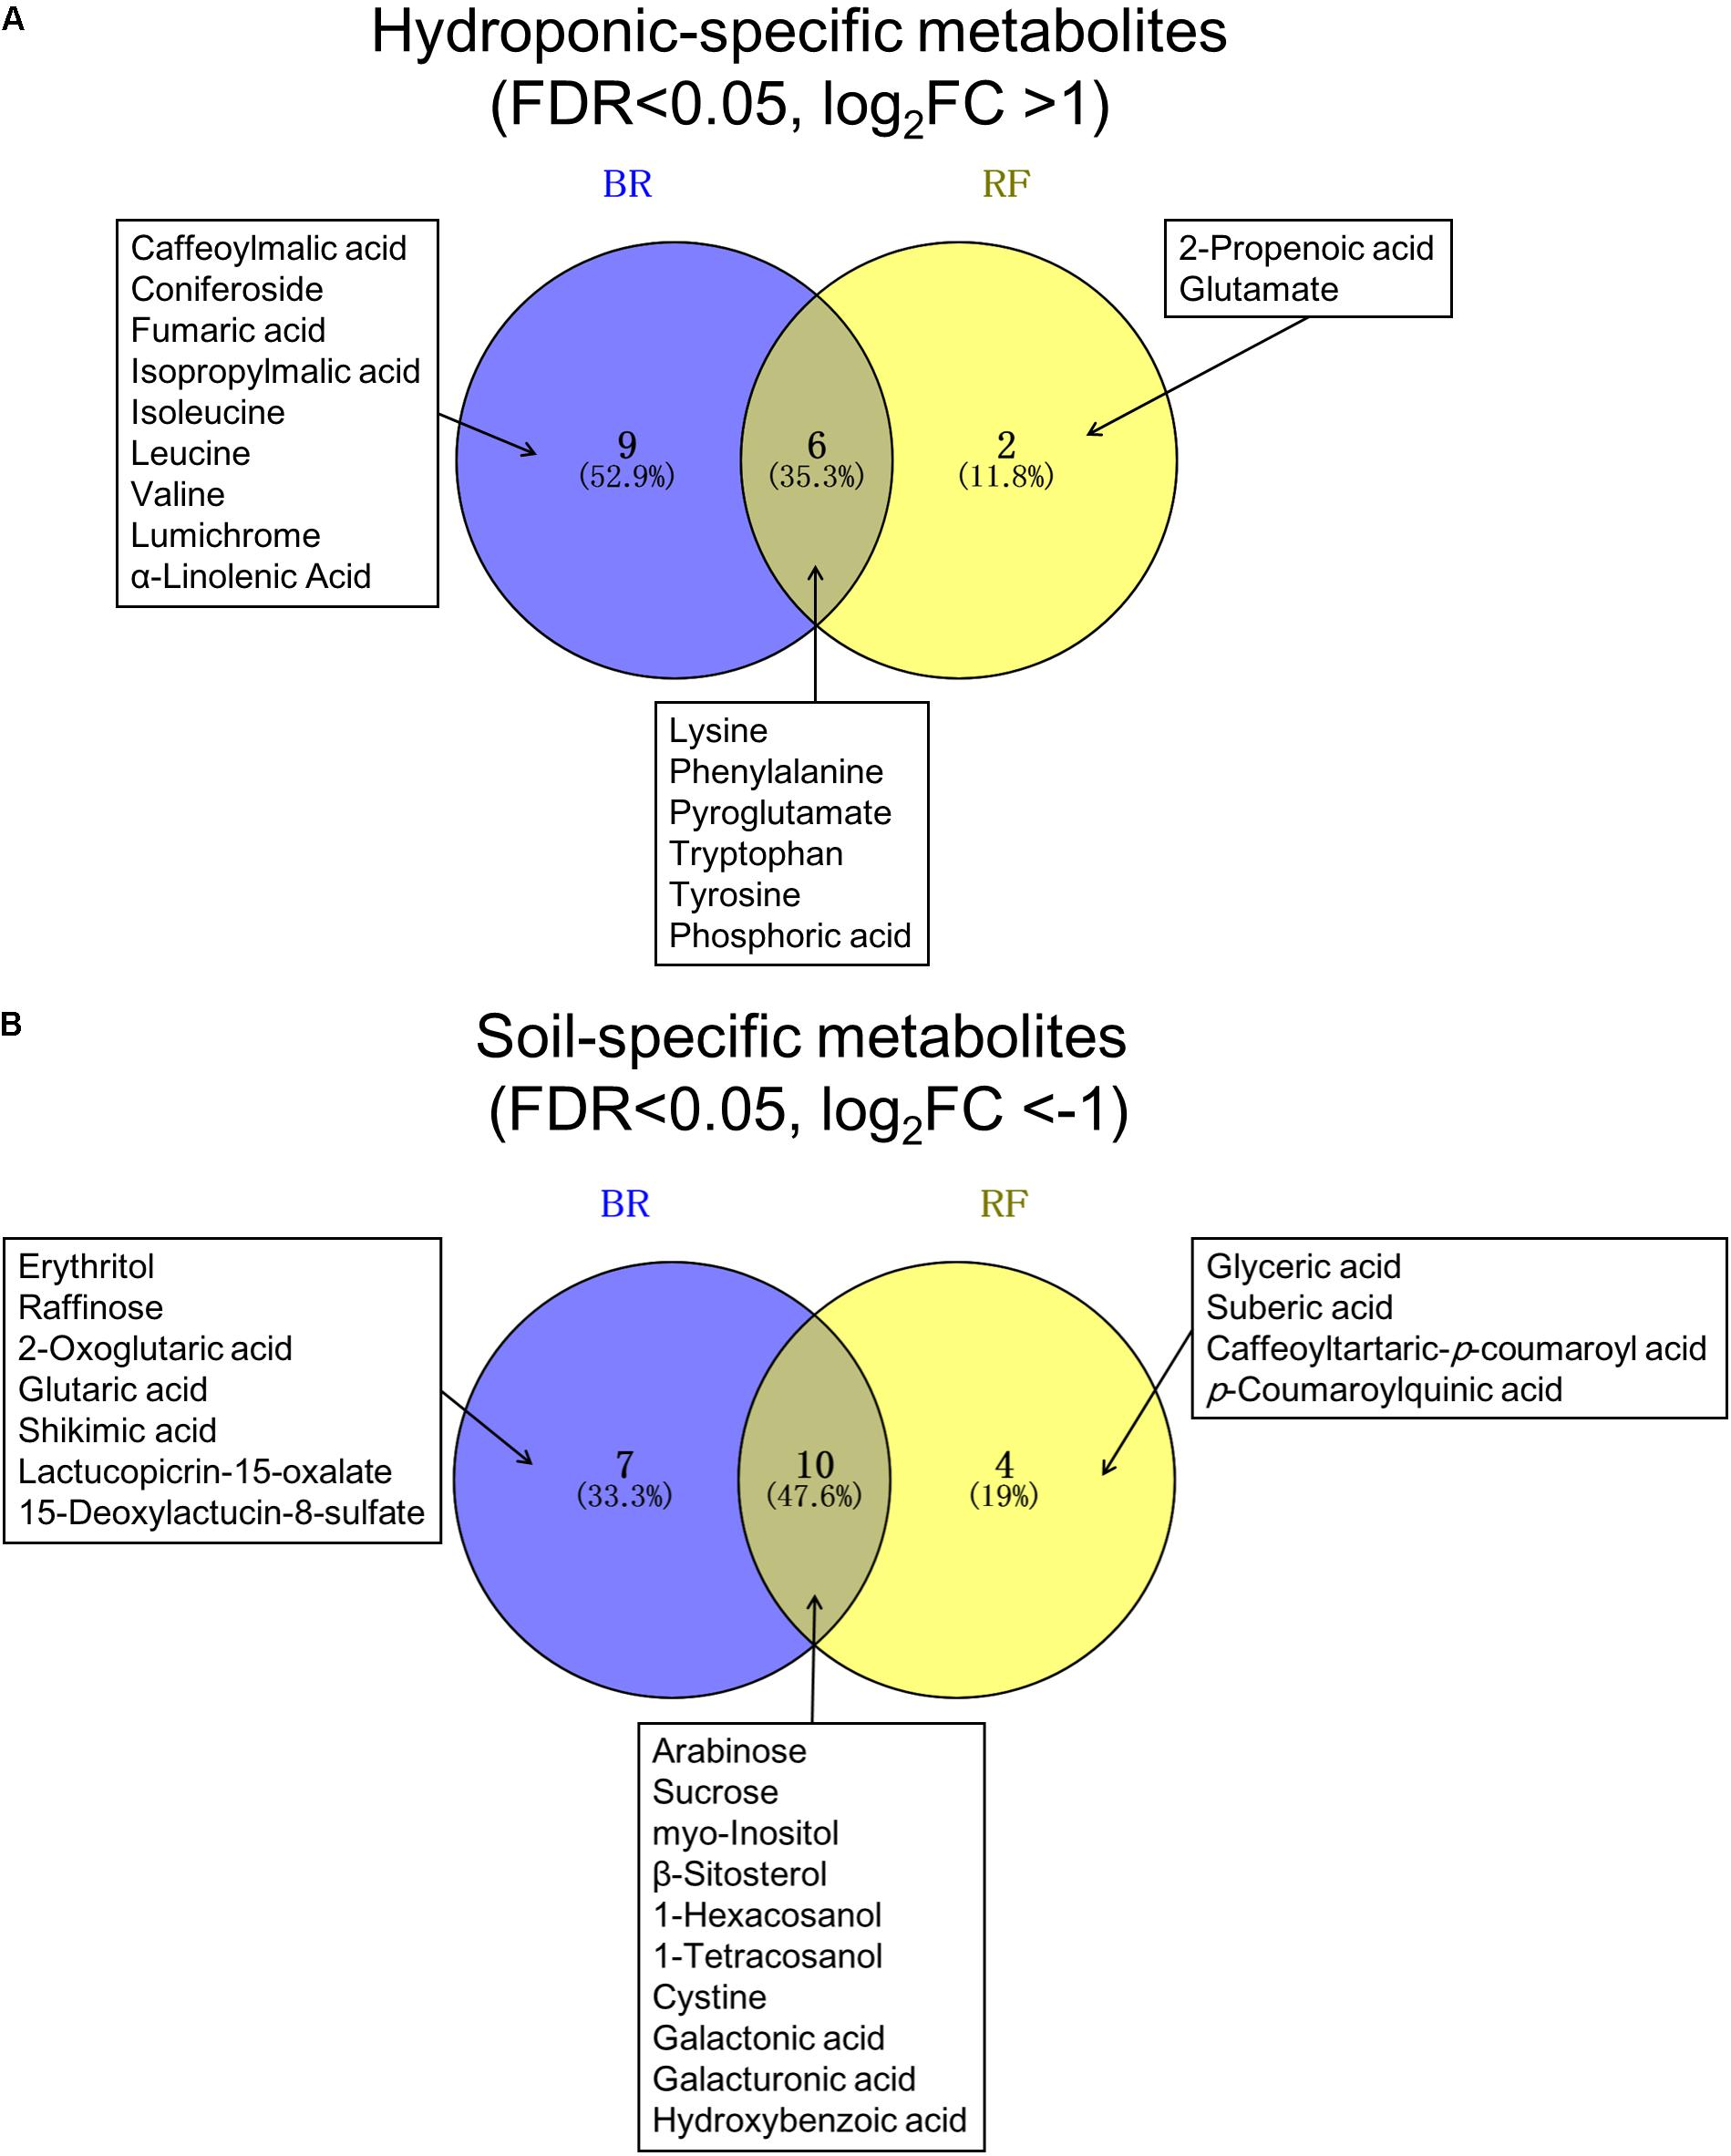 Frontiers Metabolomic Evaluation Of The Quality Leaf Lettuce Bean Seed Germination Diagram 9 3 1 Draw And Label A